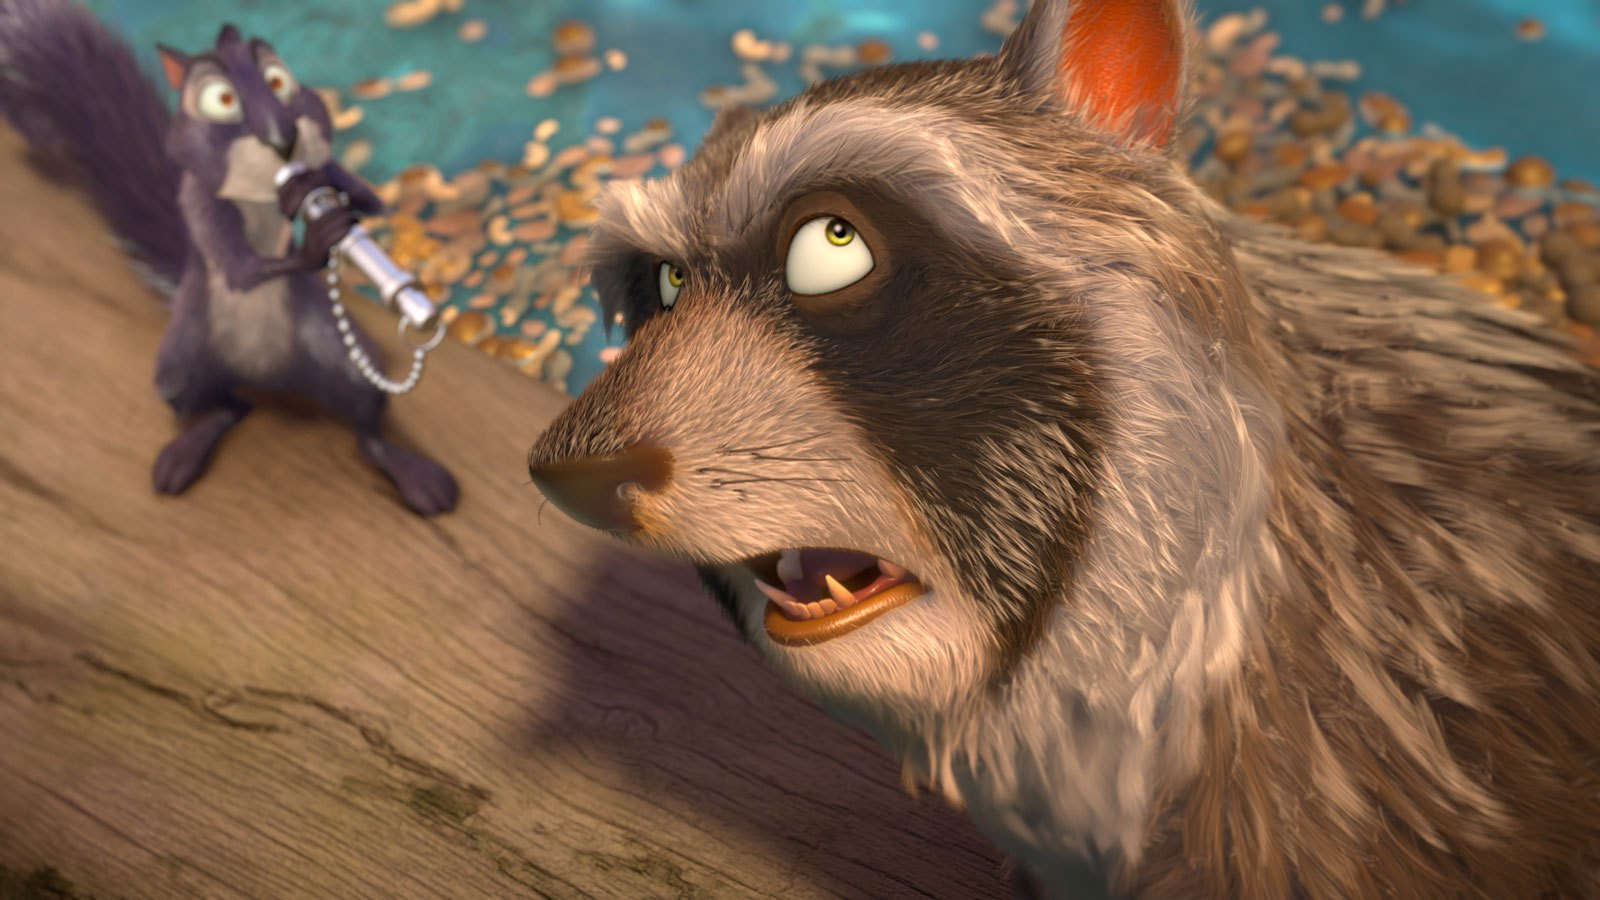 Zootopia Iphone Wallpaper The Nut Job Animated Movie Amazing Hd Wallpapers All Hd